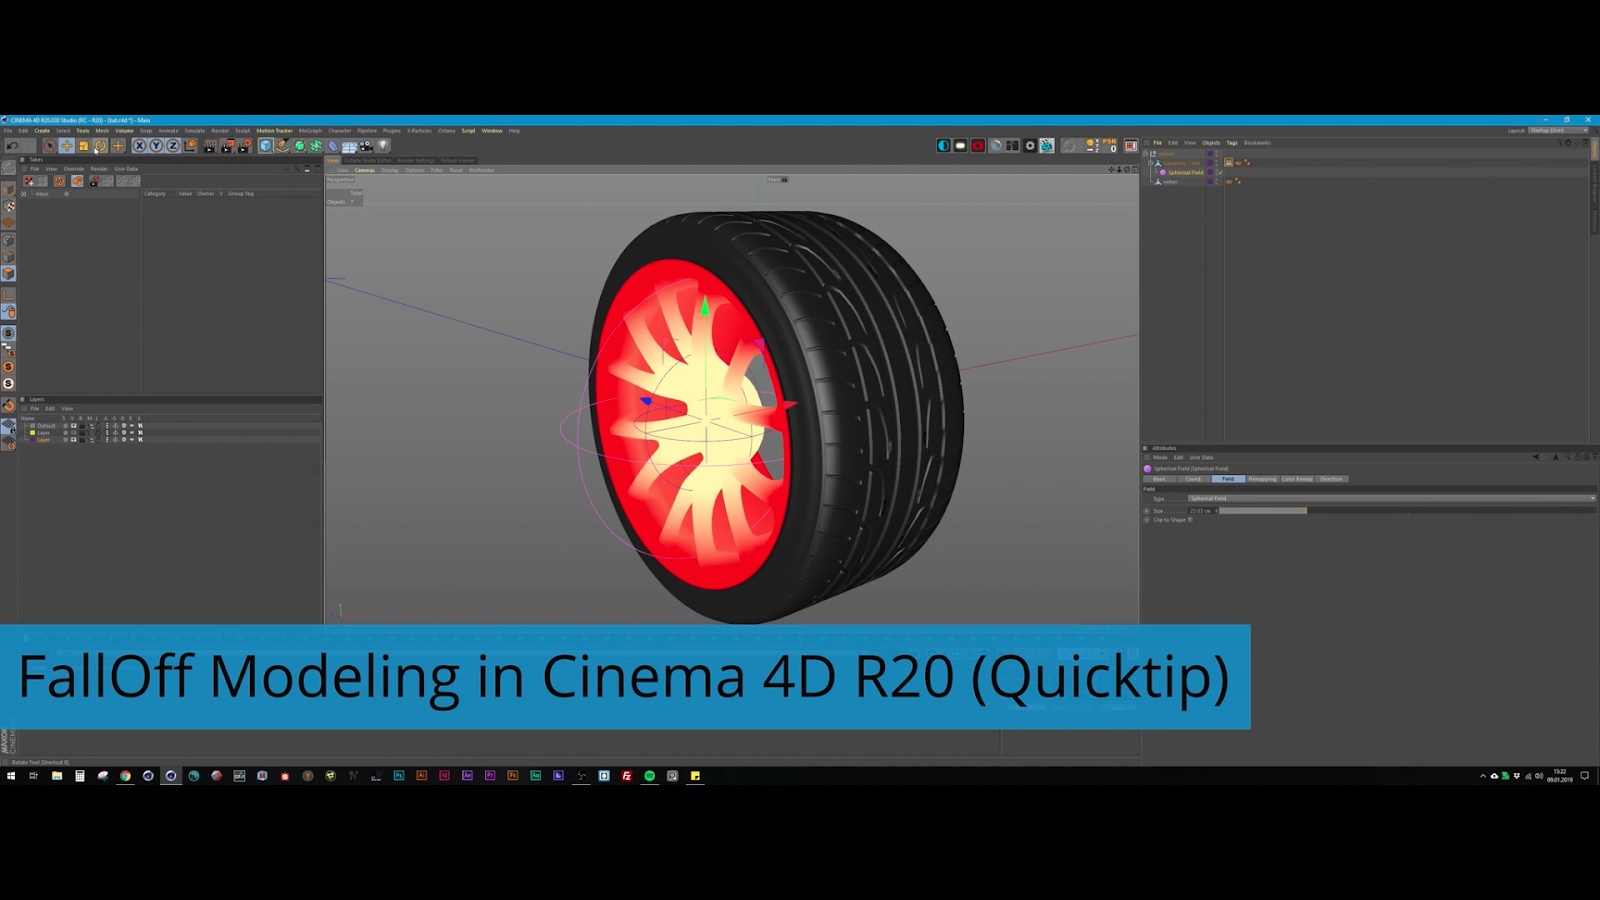 How to get Modo-like falloff modeling in Cinema 4D R20 | CG TUTORIAL